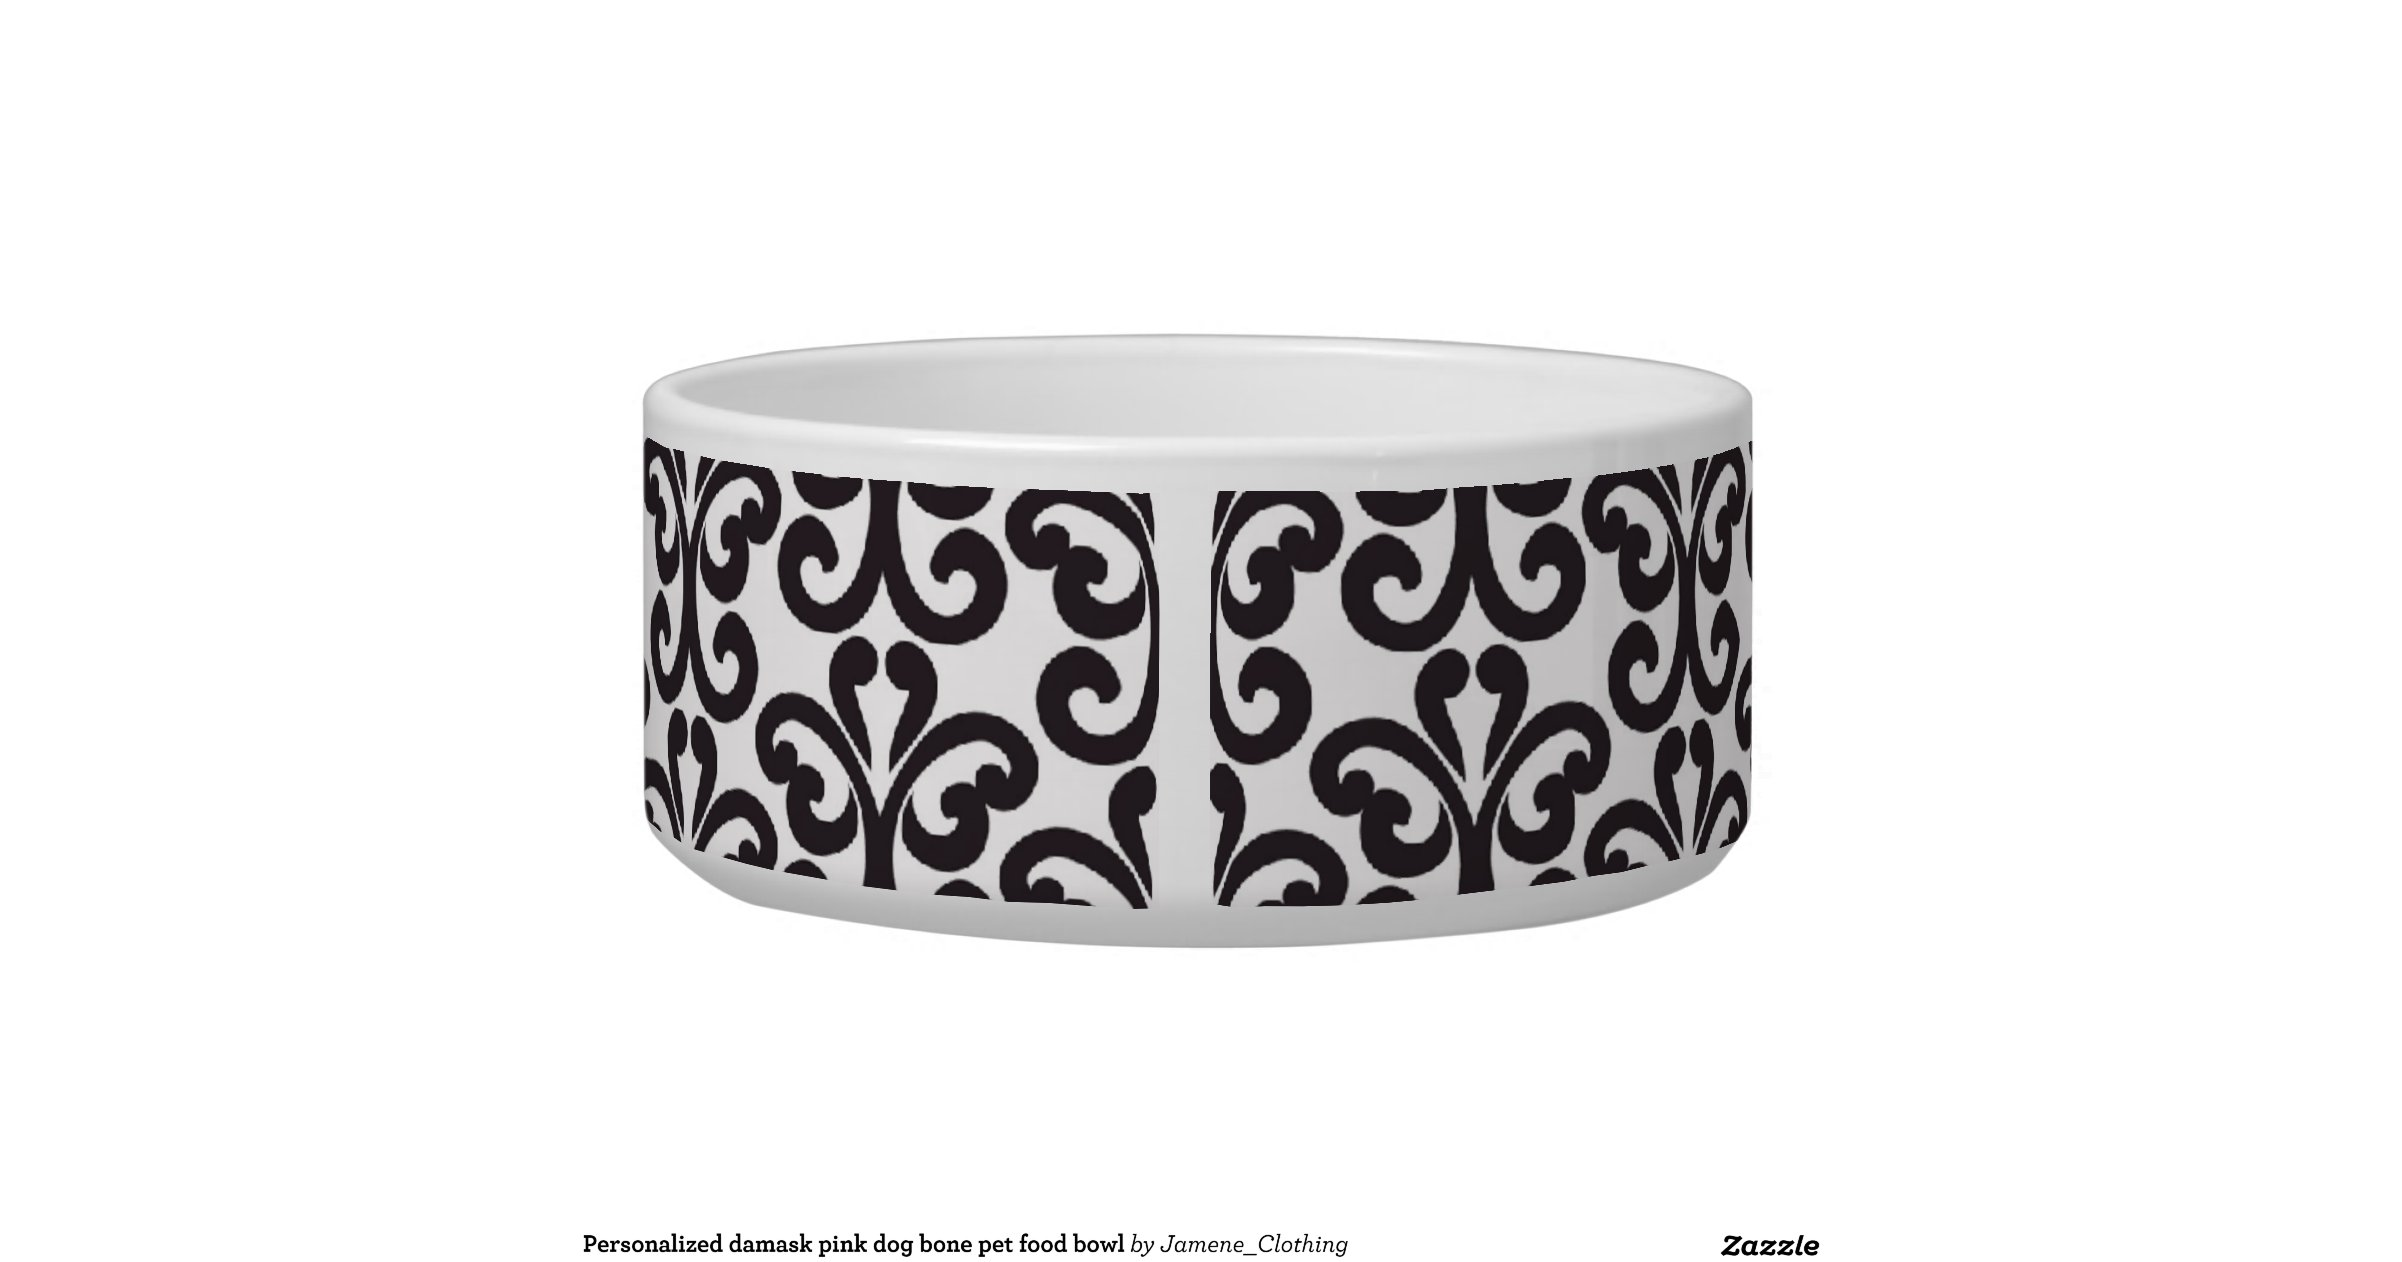 personalized_damask_pink_dog_bone_pet_food_bowl ... - photo#28